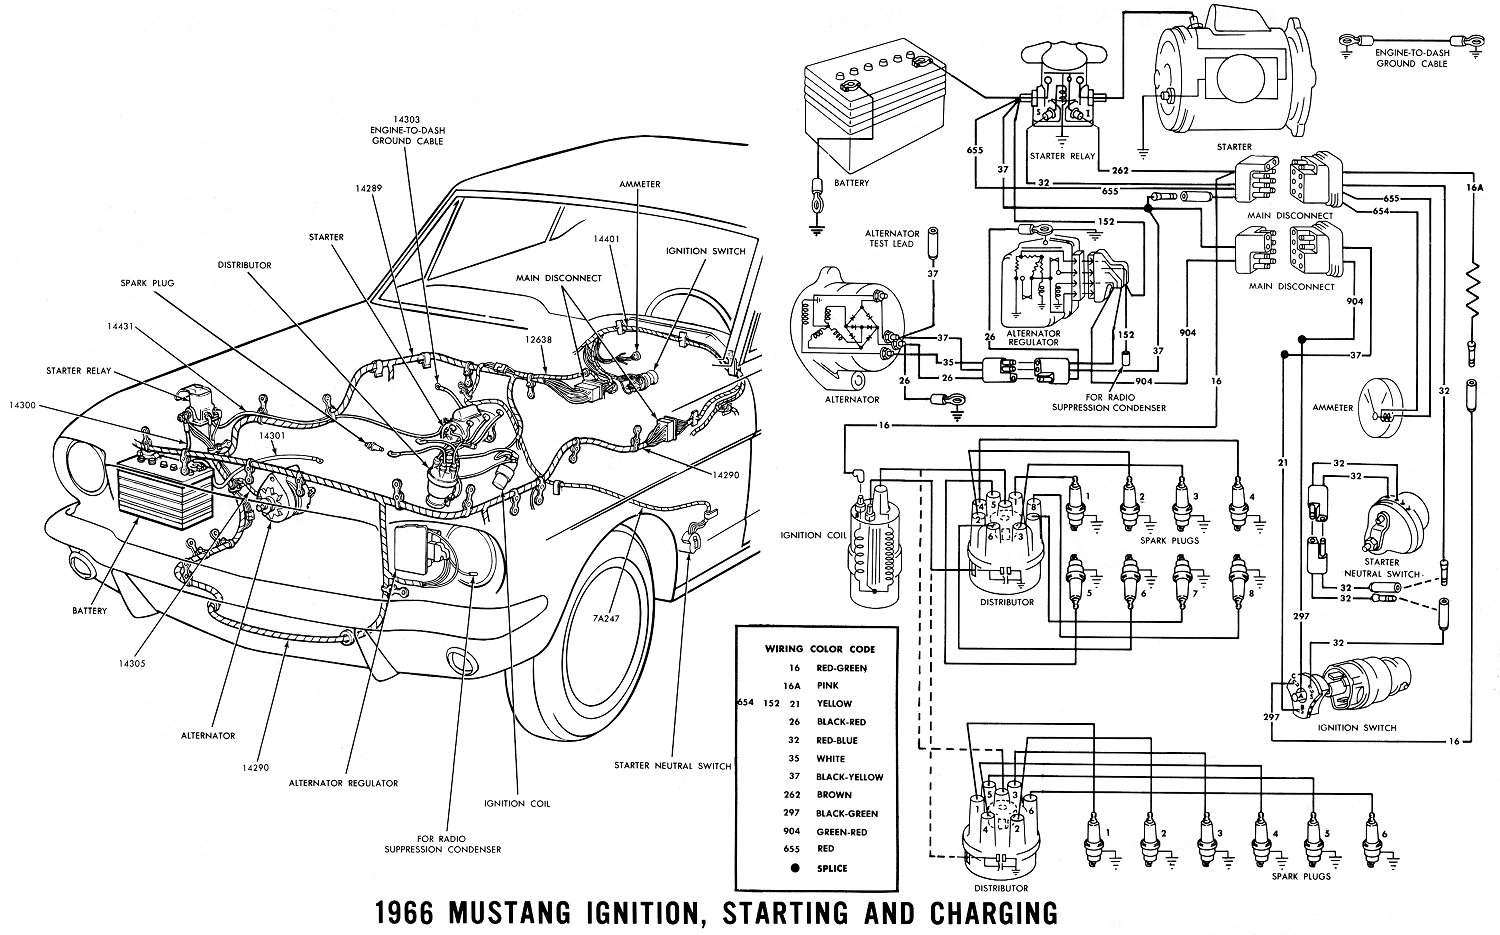 65 mustang wiring diagram catalogue of schemas 1966 nova alternator wiring diagram